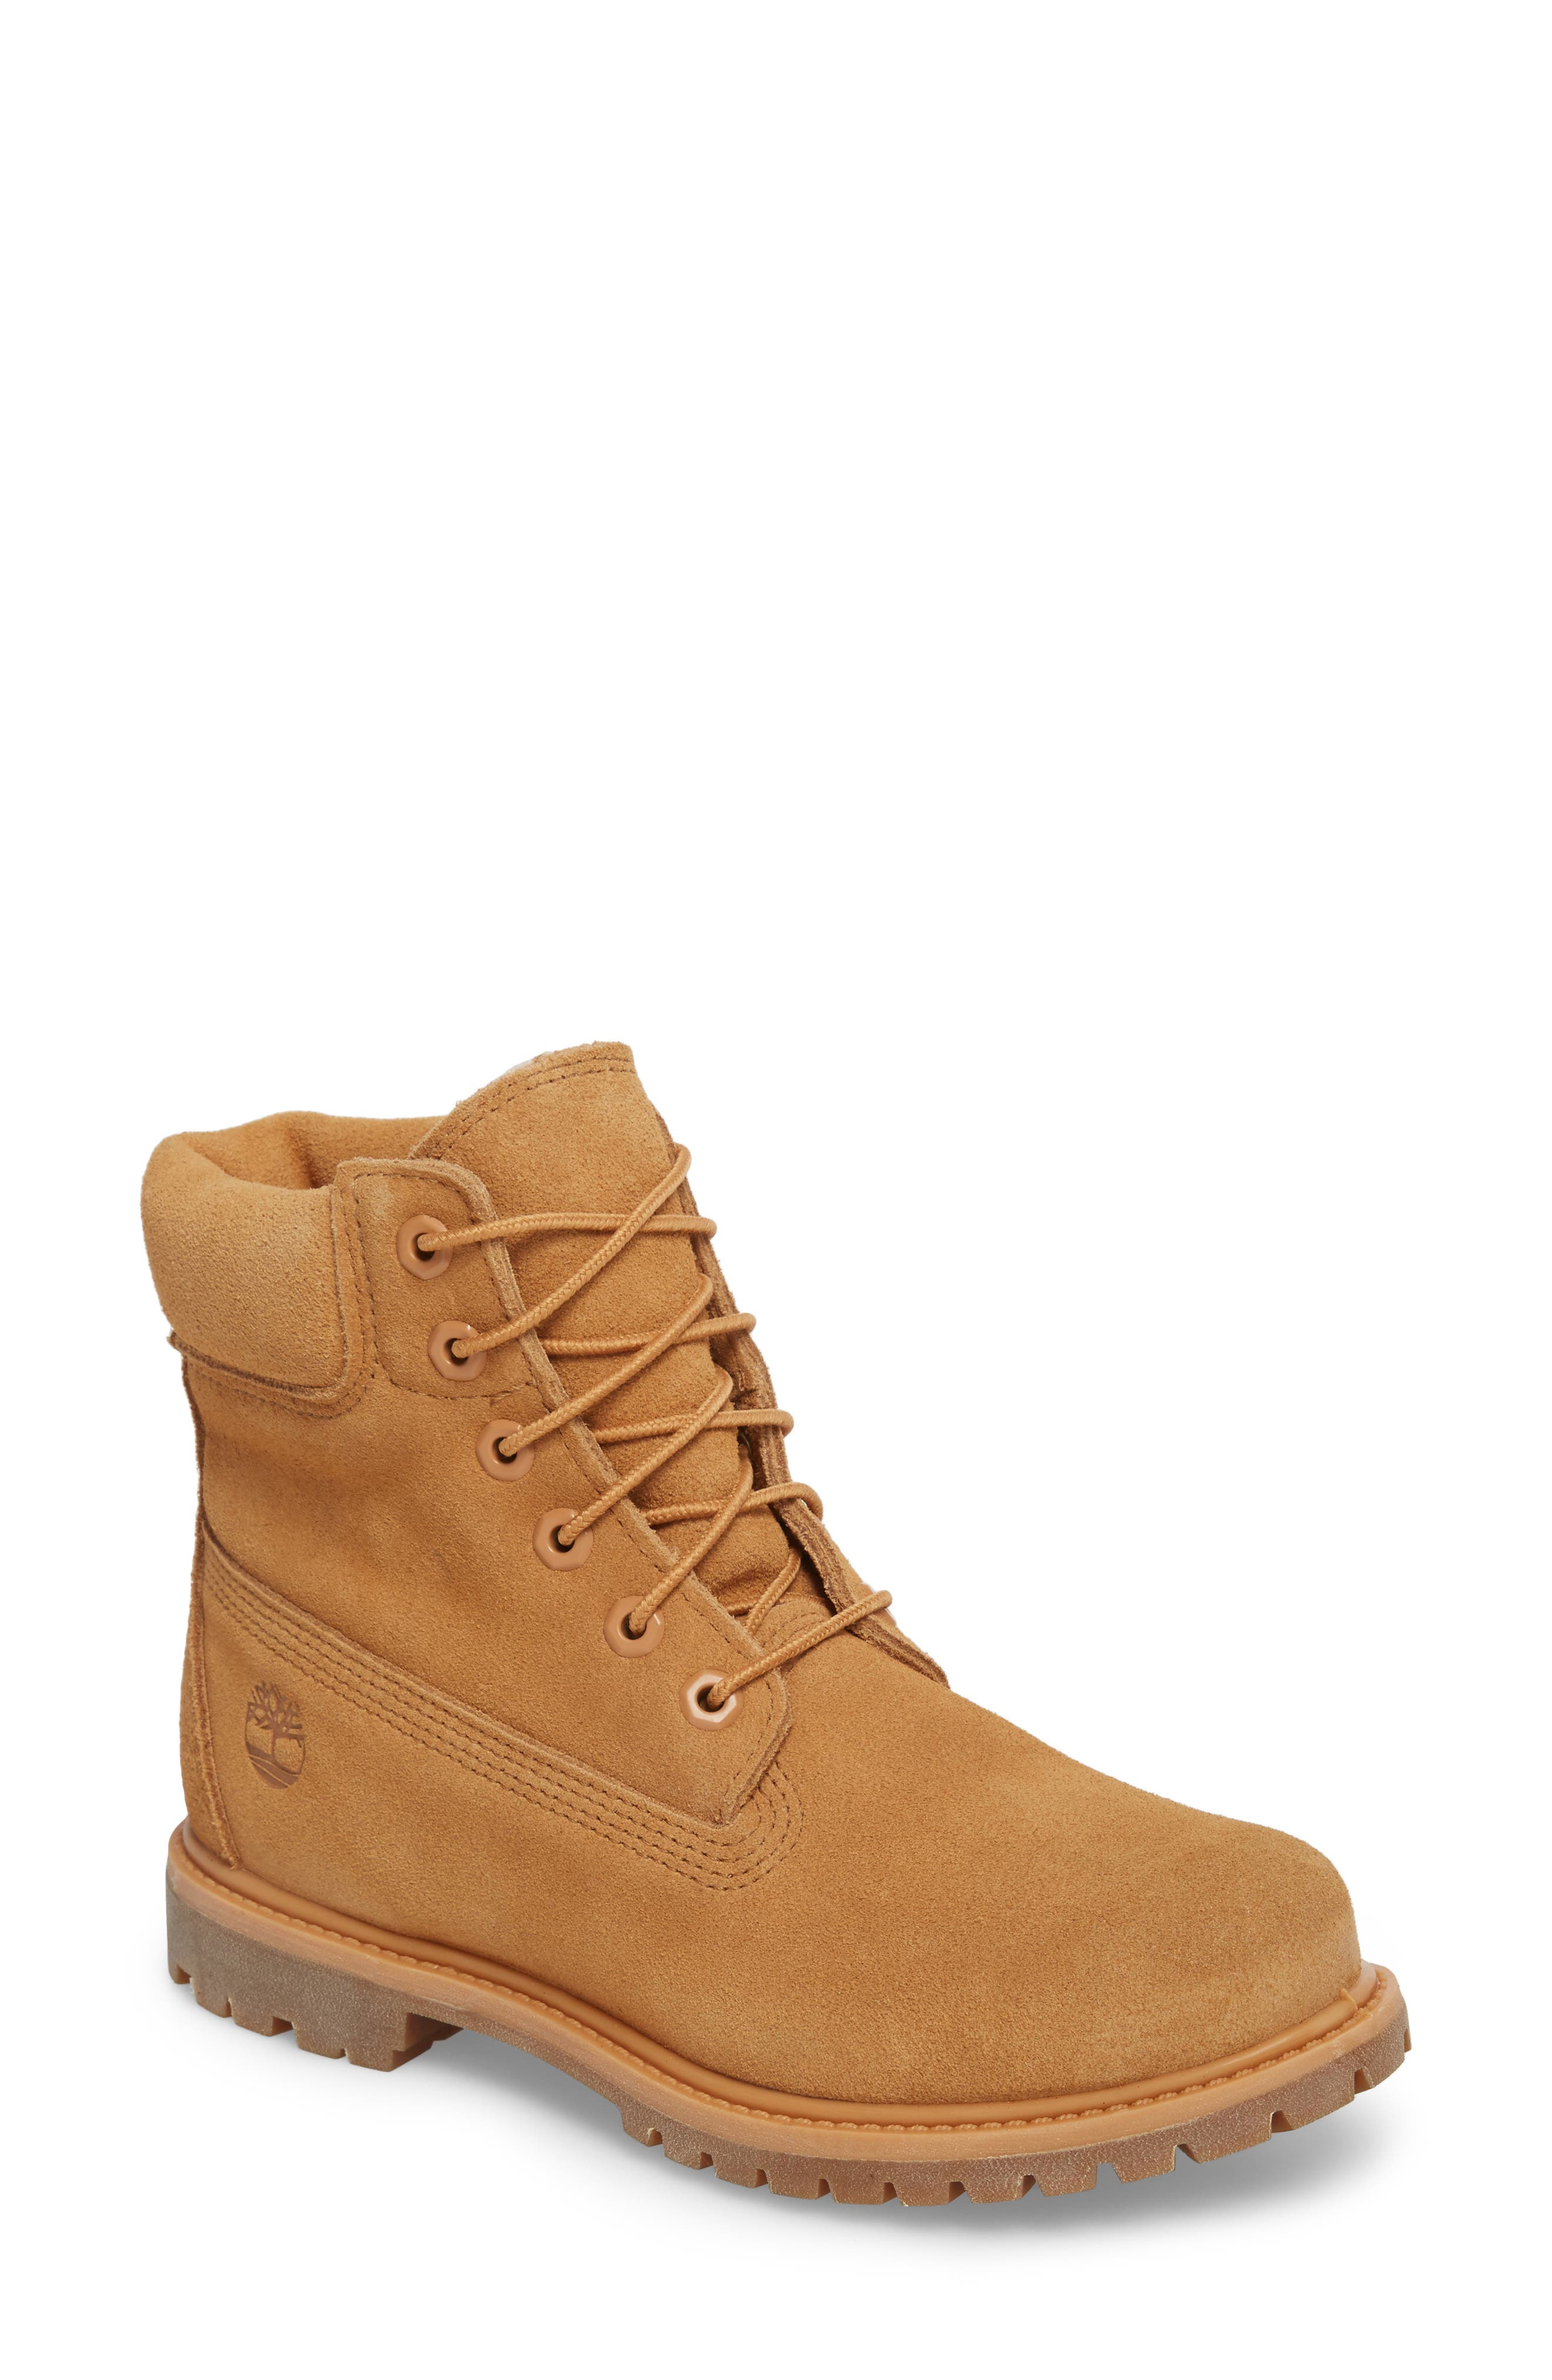 6 Inch Boot,                         Main,                         color, Biscuit Nubuck Leather